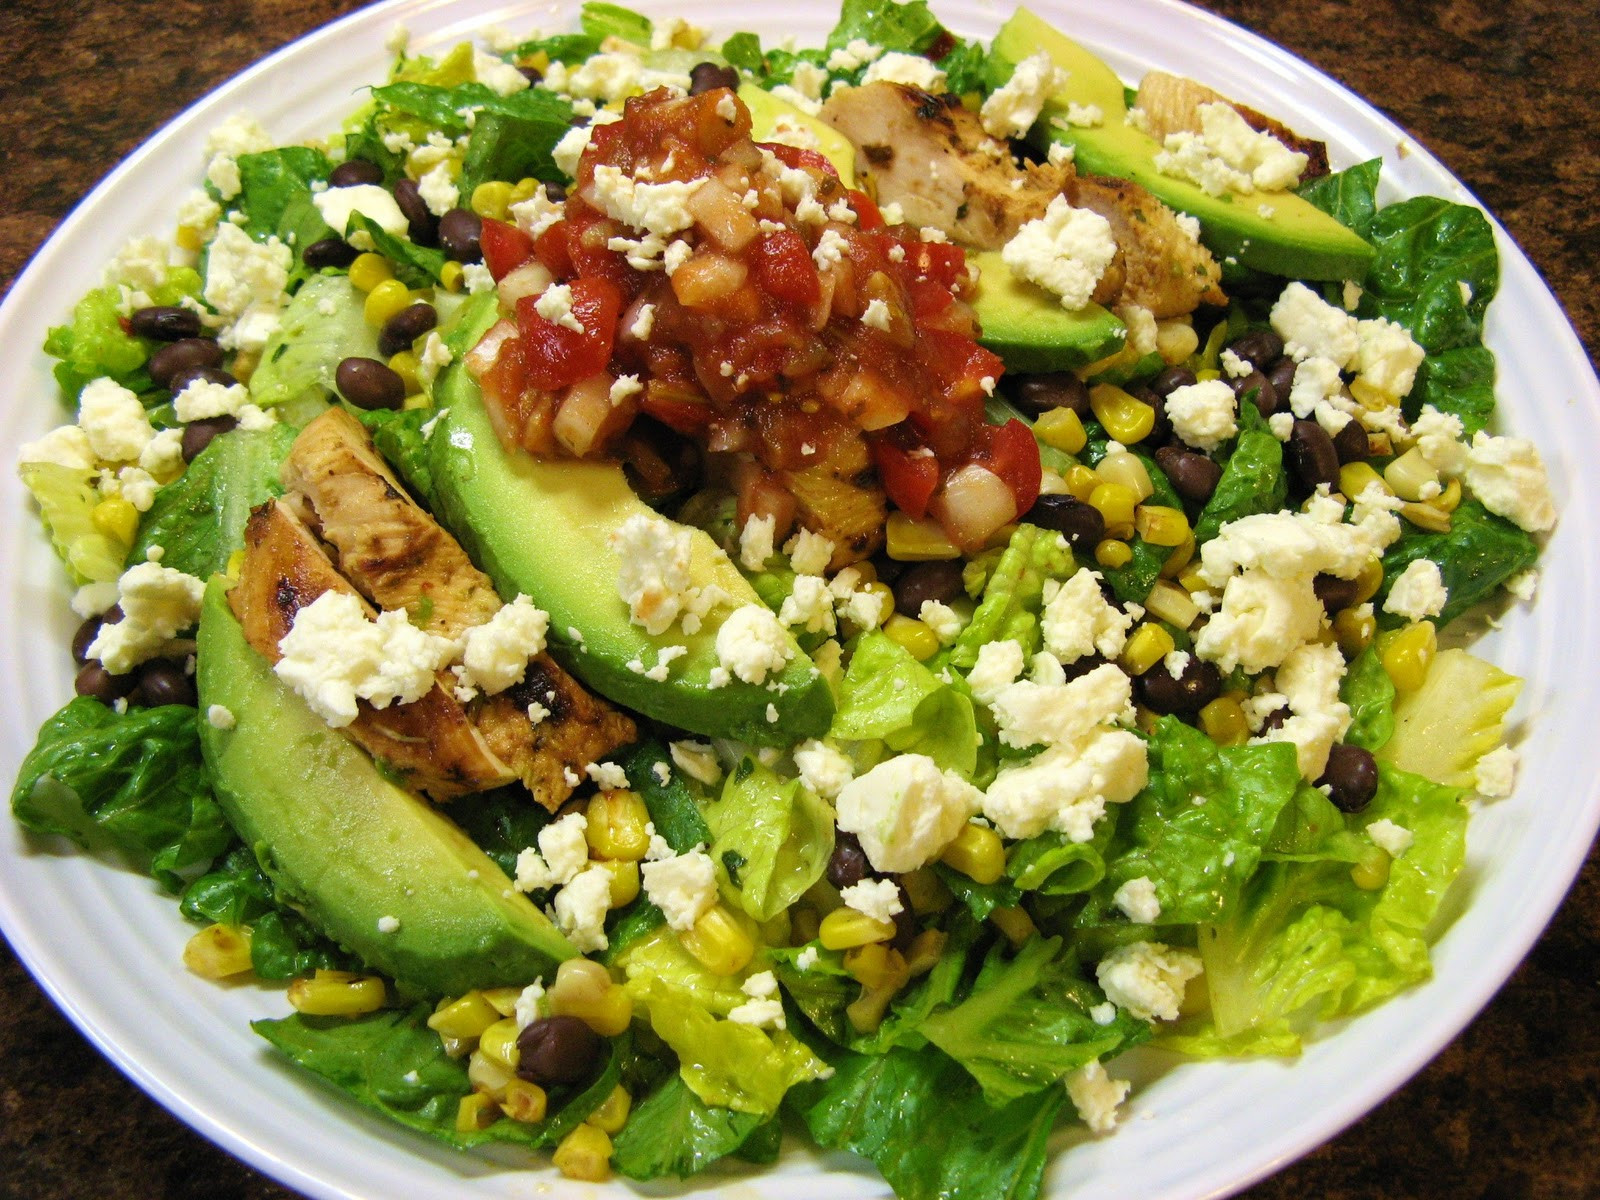 Chicken Salad Recipe Healthy  The Well Fed Newlyweds Healthy Recipes to Kick f the